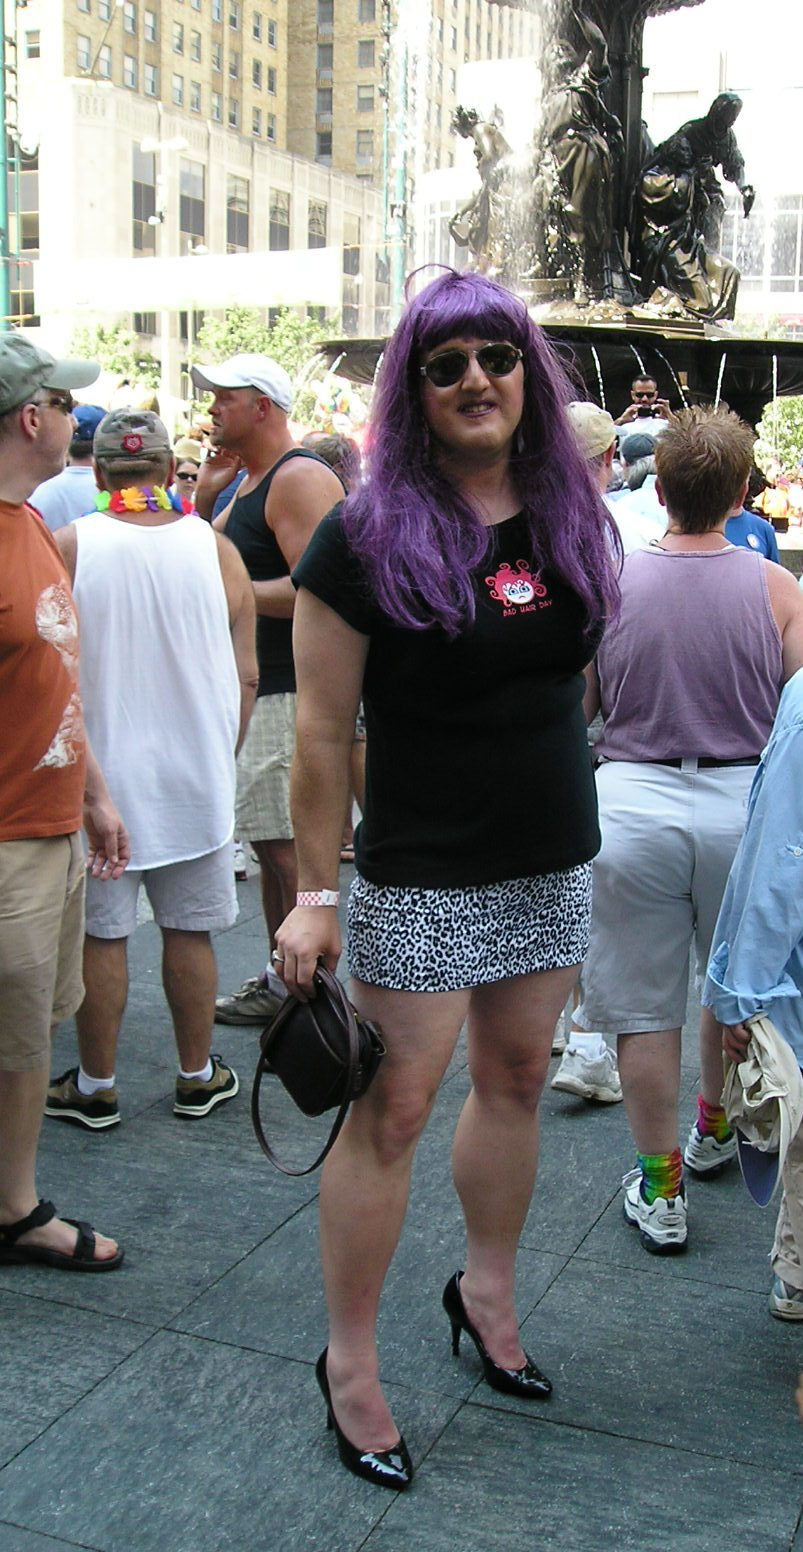 Why the club wear? I usually go to Pride events and dress ...